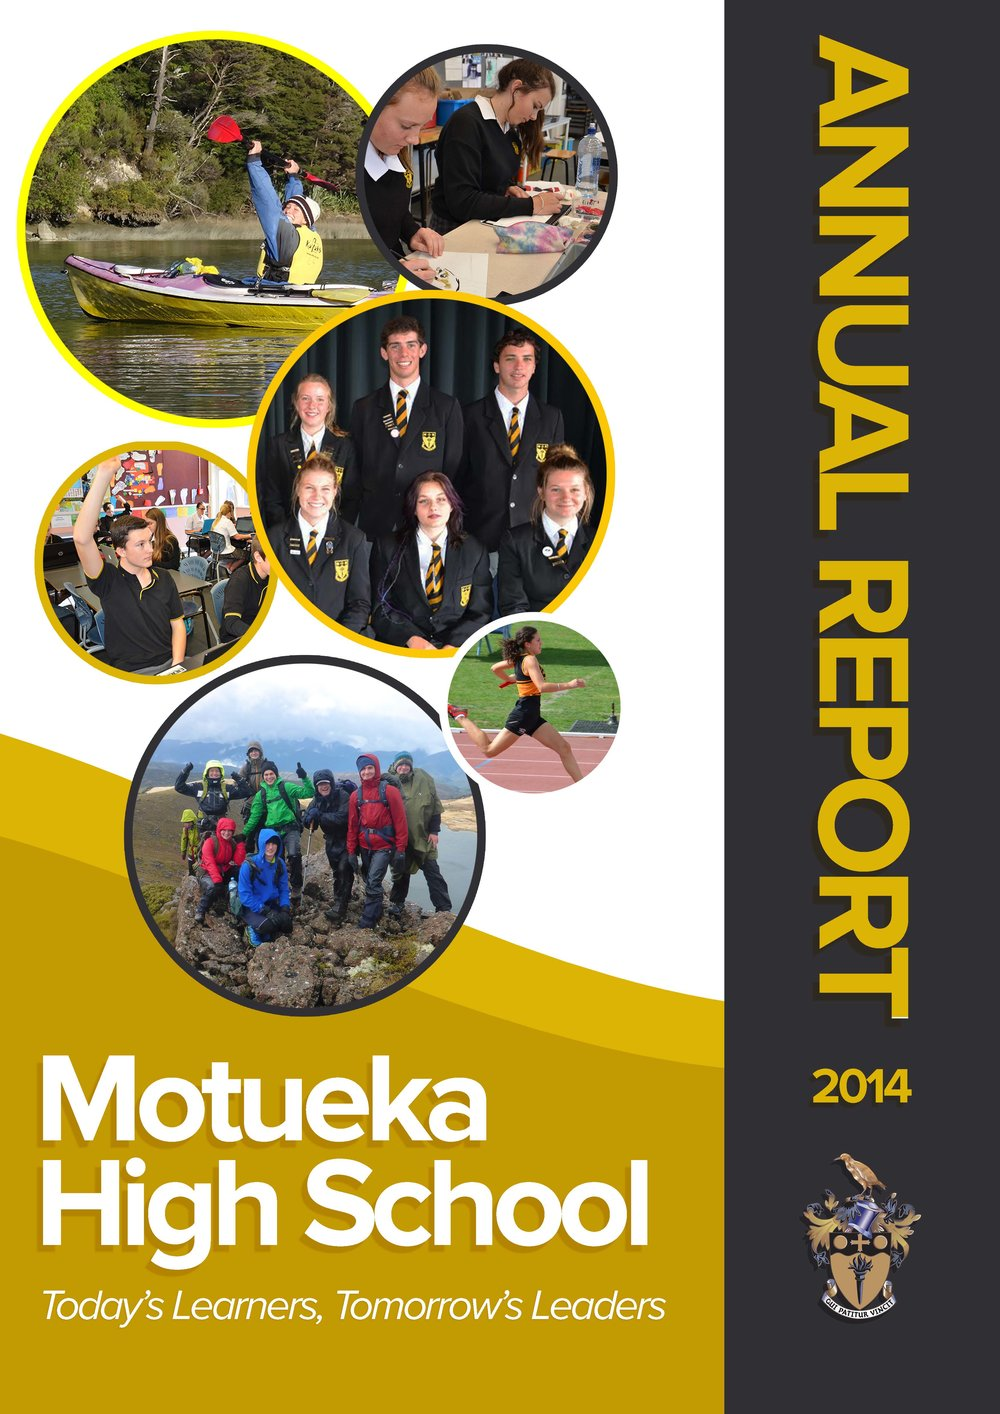 Redevelopment of Motueka High School identity